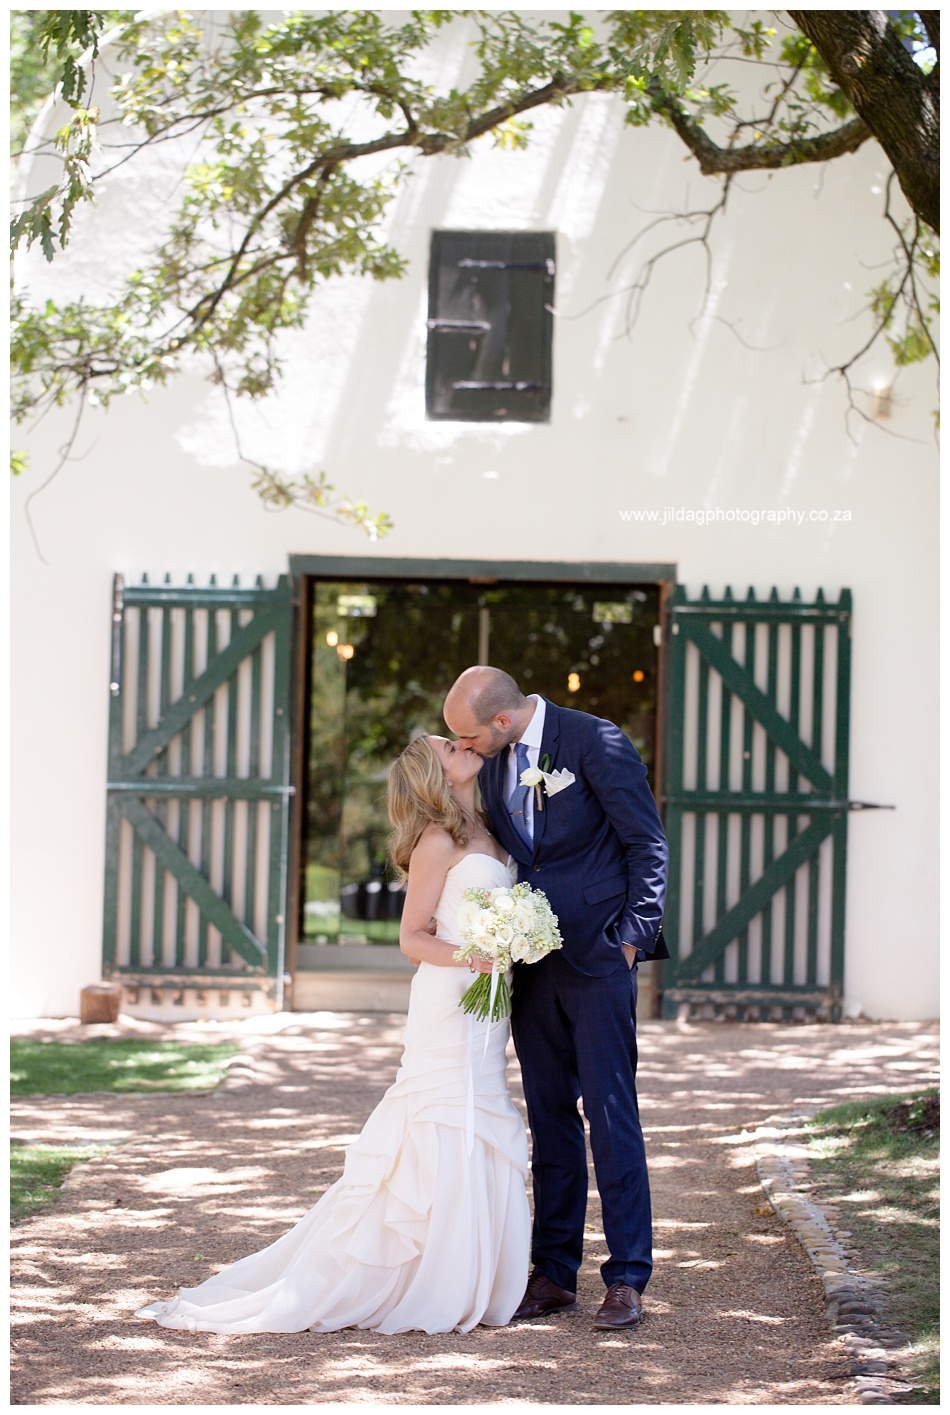 Jilda-G-Photography-Boschendal-wedding_1195